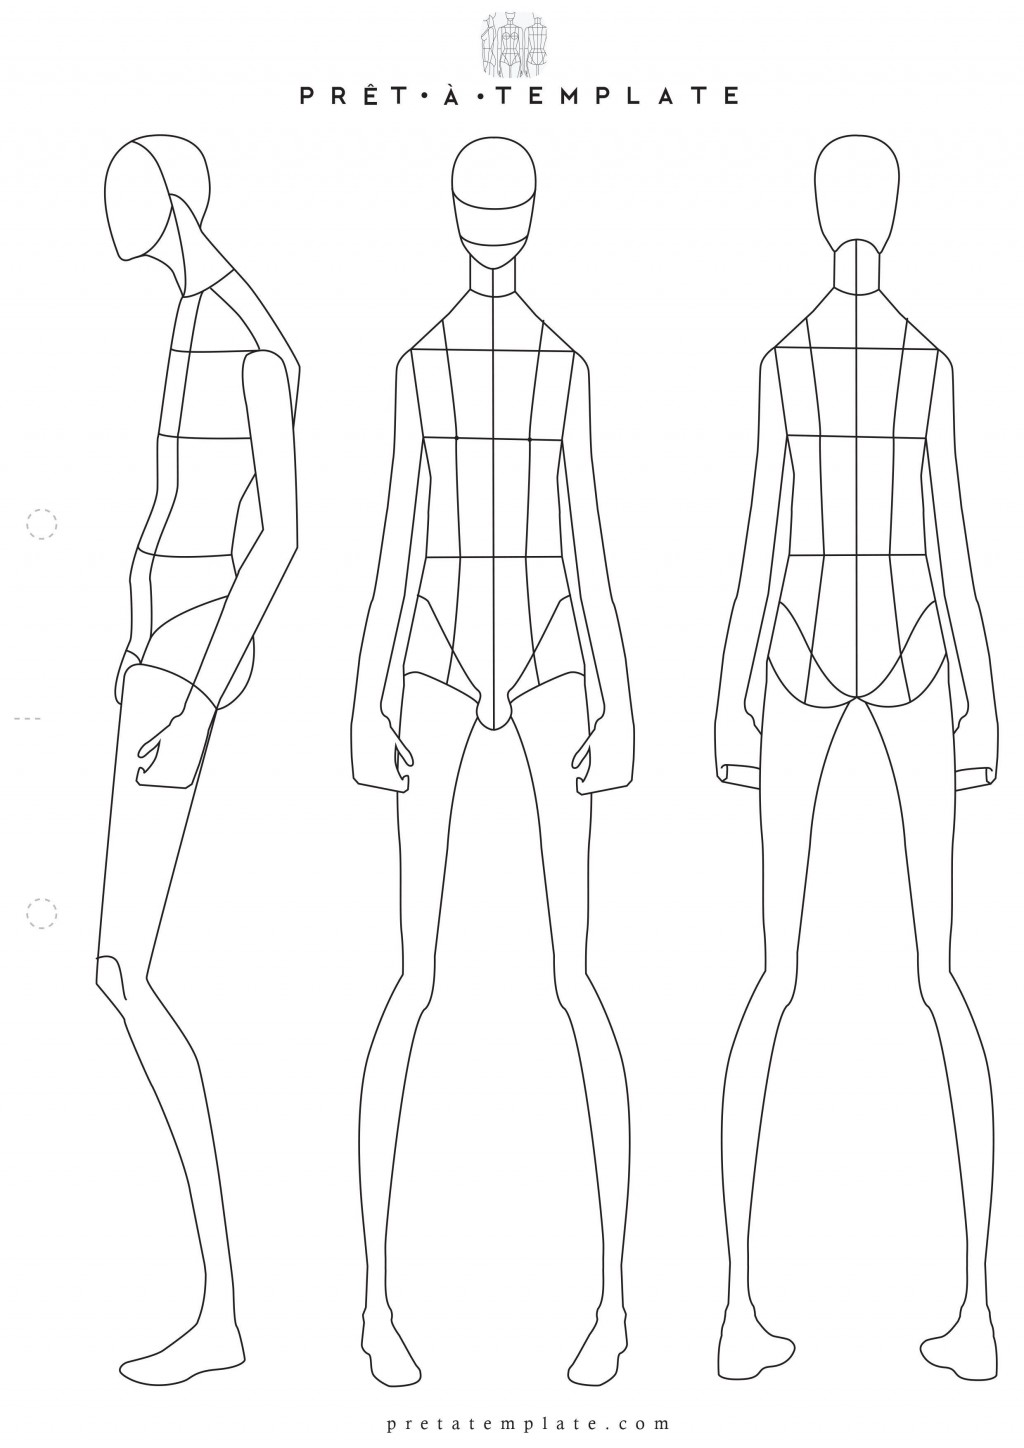 001 Sensational Body Template For Fashion Design High Definition  Female Male HumanLarge